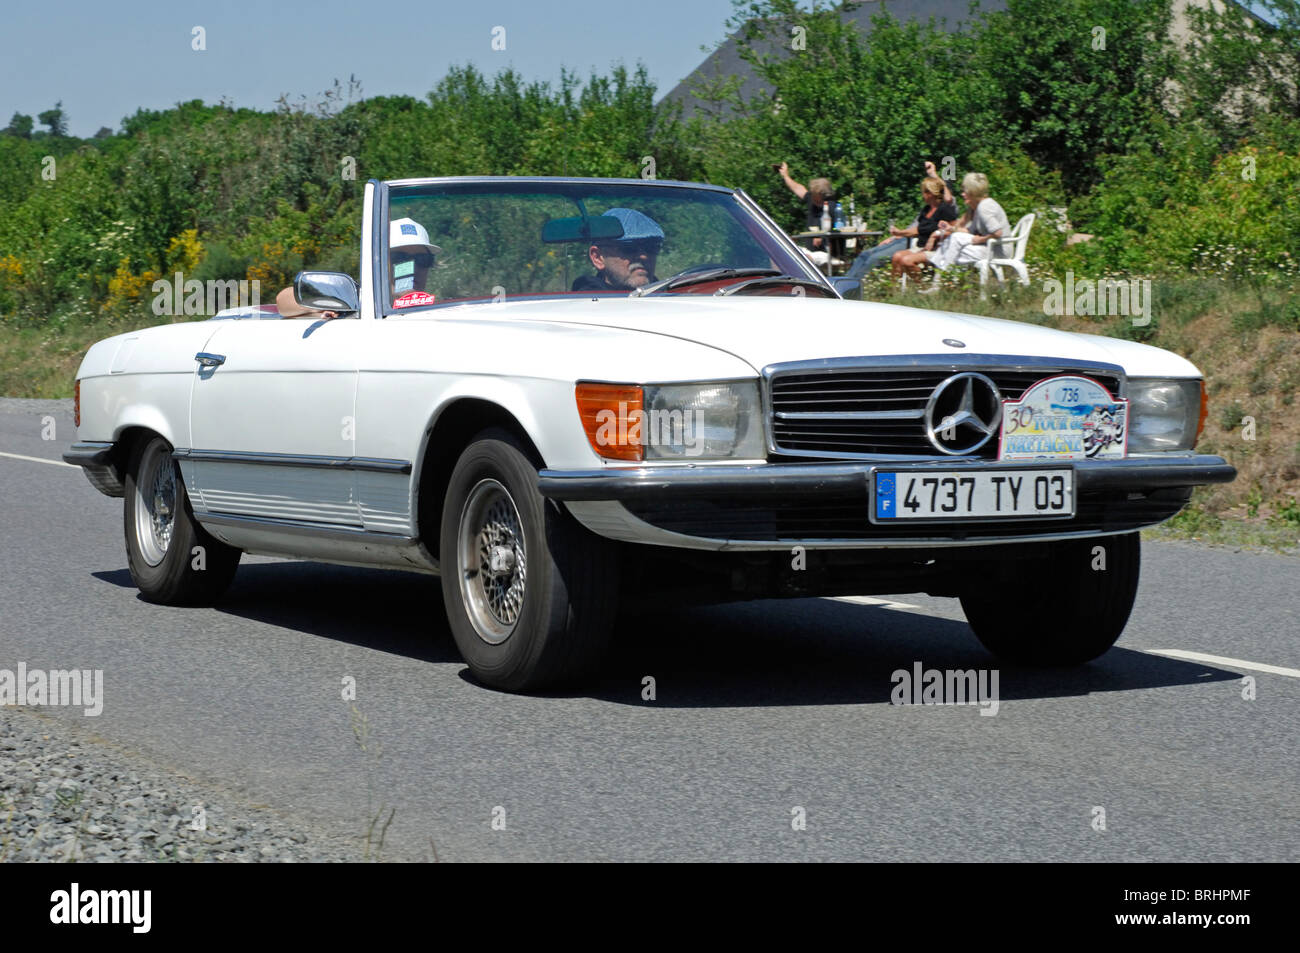 mercedes benz 350sl 1970 in the tour de bretagne classic car rally stock photo royalty free. Black Bedroom Furniture Sets. Home Design Ideas